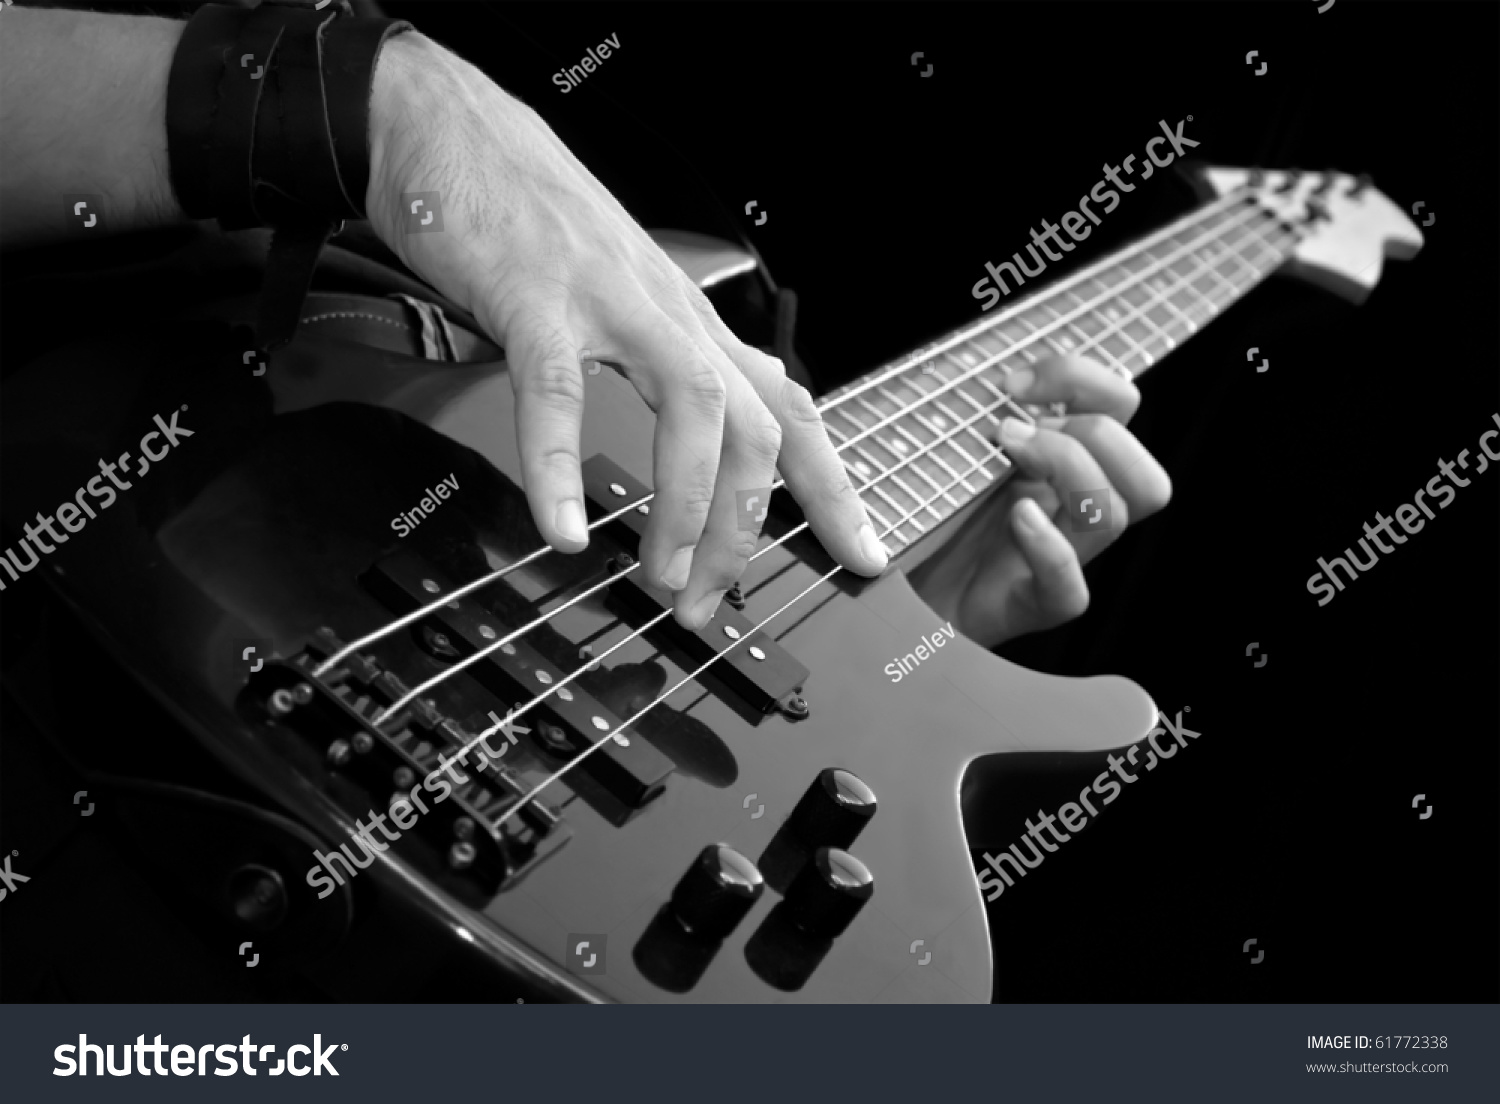 electrical bass guitar in male hands black and white stock photo 61772338 shutterstock. Black Bedroom Furniture Sets. Home Design Ideas